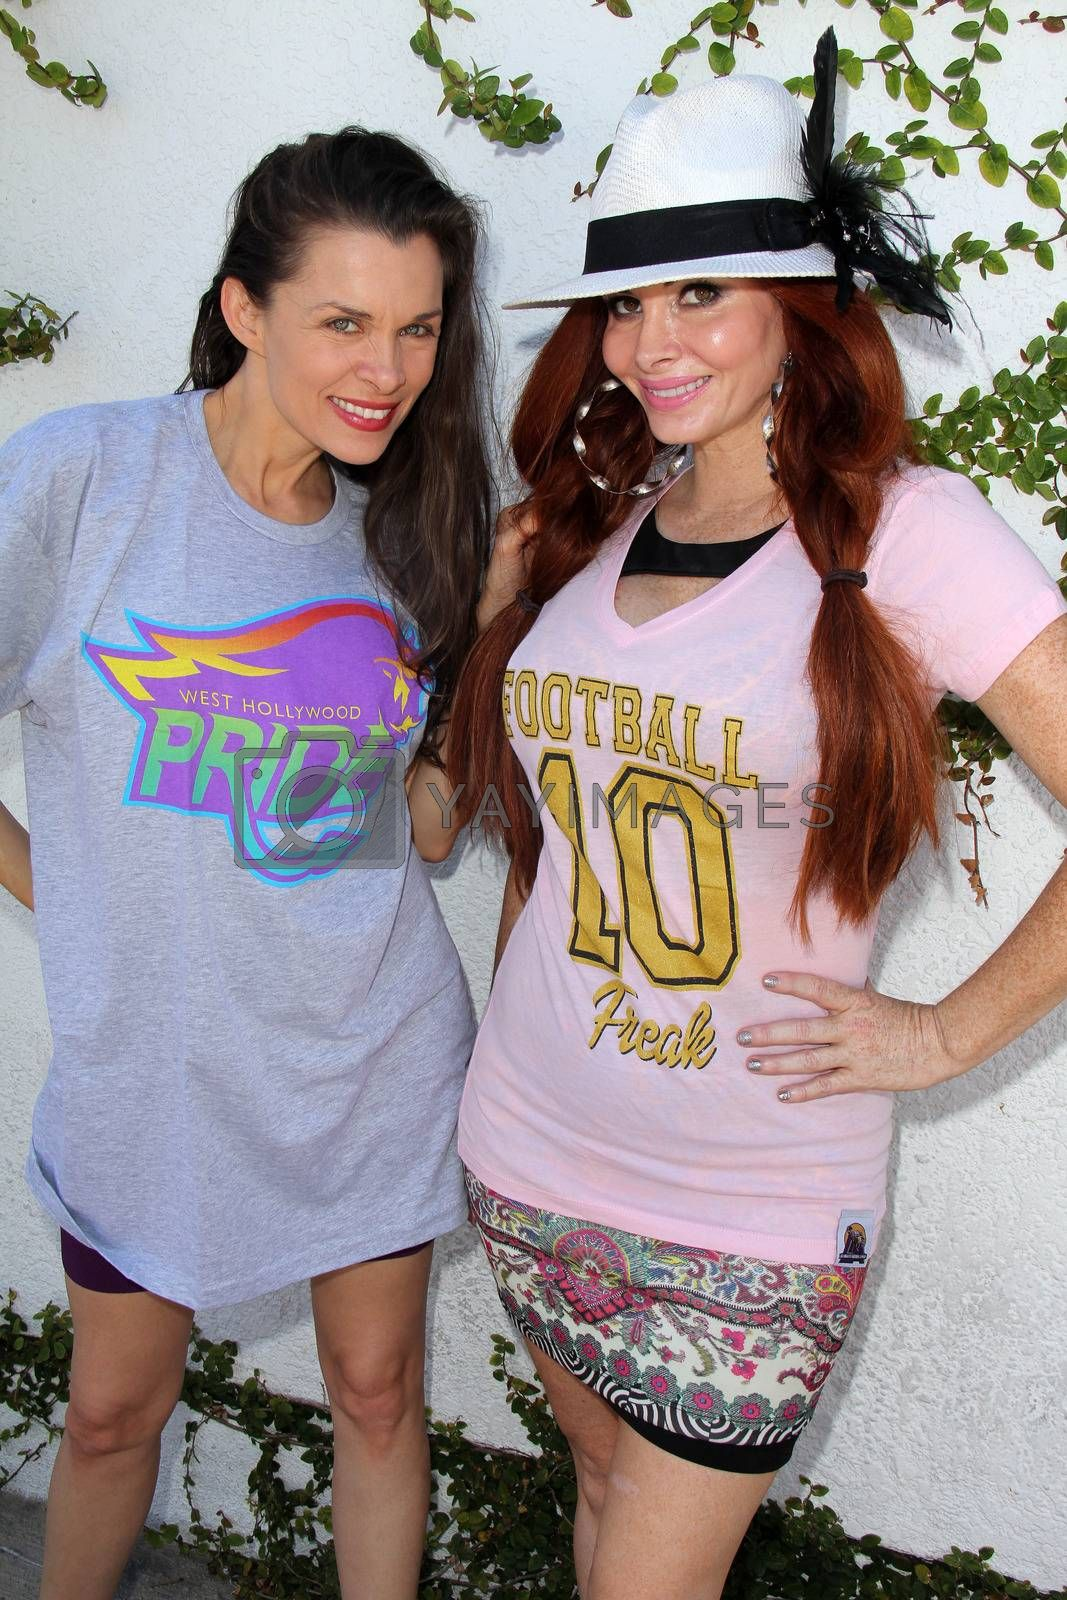 Royalty free image of Alicia Arden, Phoebe Price at the Private LA Football League Summer Kickoff Suite featuring LA Football League T-Shirts, Private Location, Los Angeles, CA 06-18-14/ImageCollect by ImageCollect